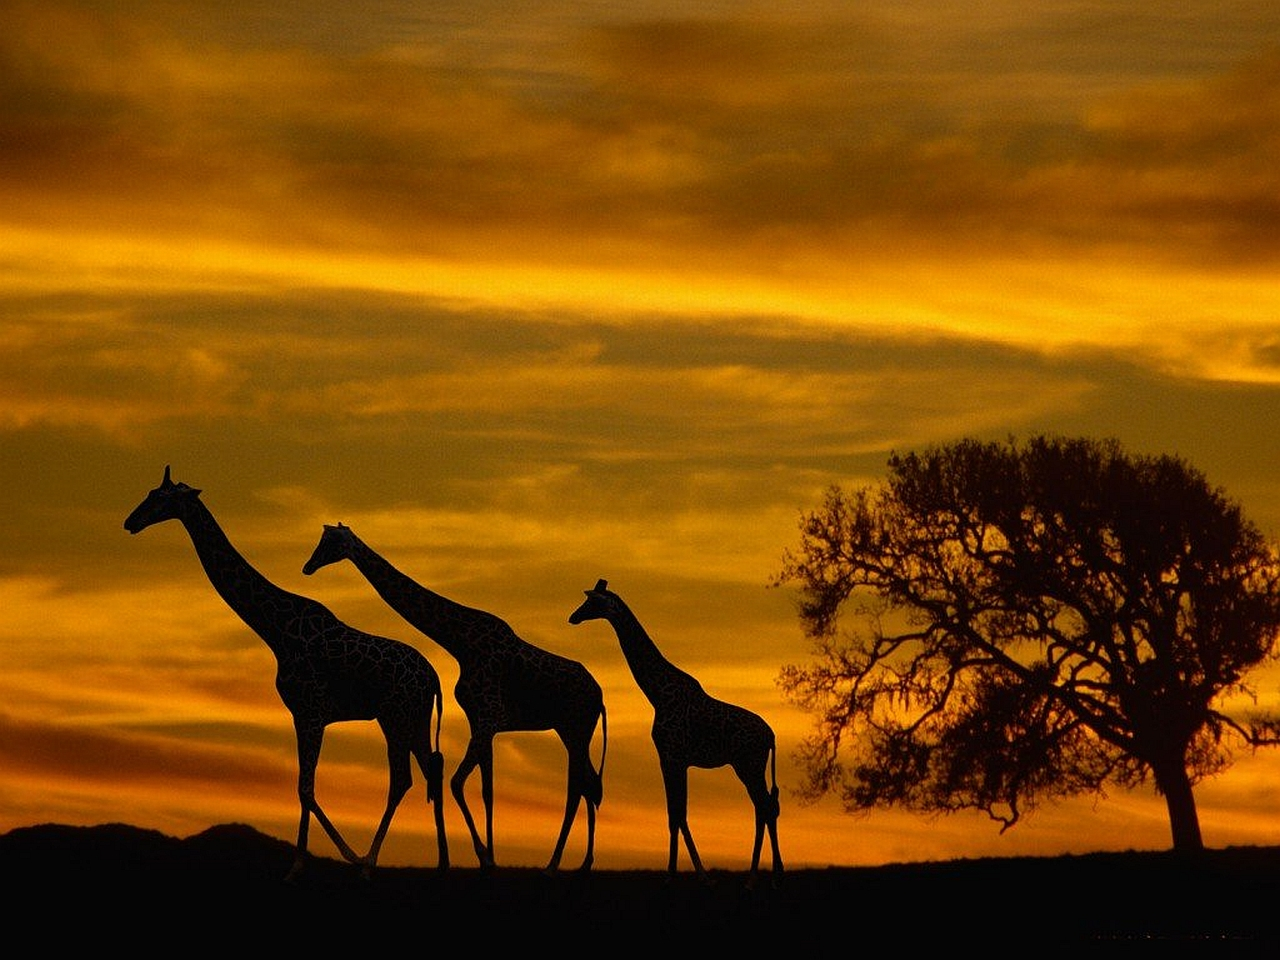 Silhouette Giraffe Wallpaper Photos